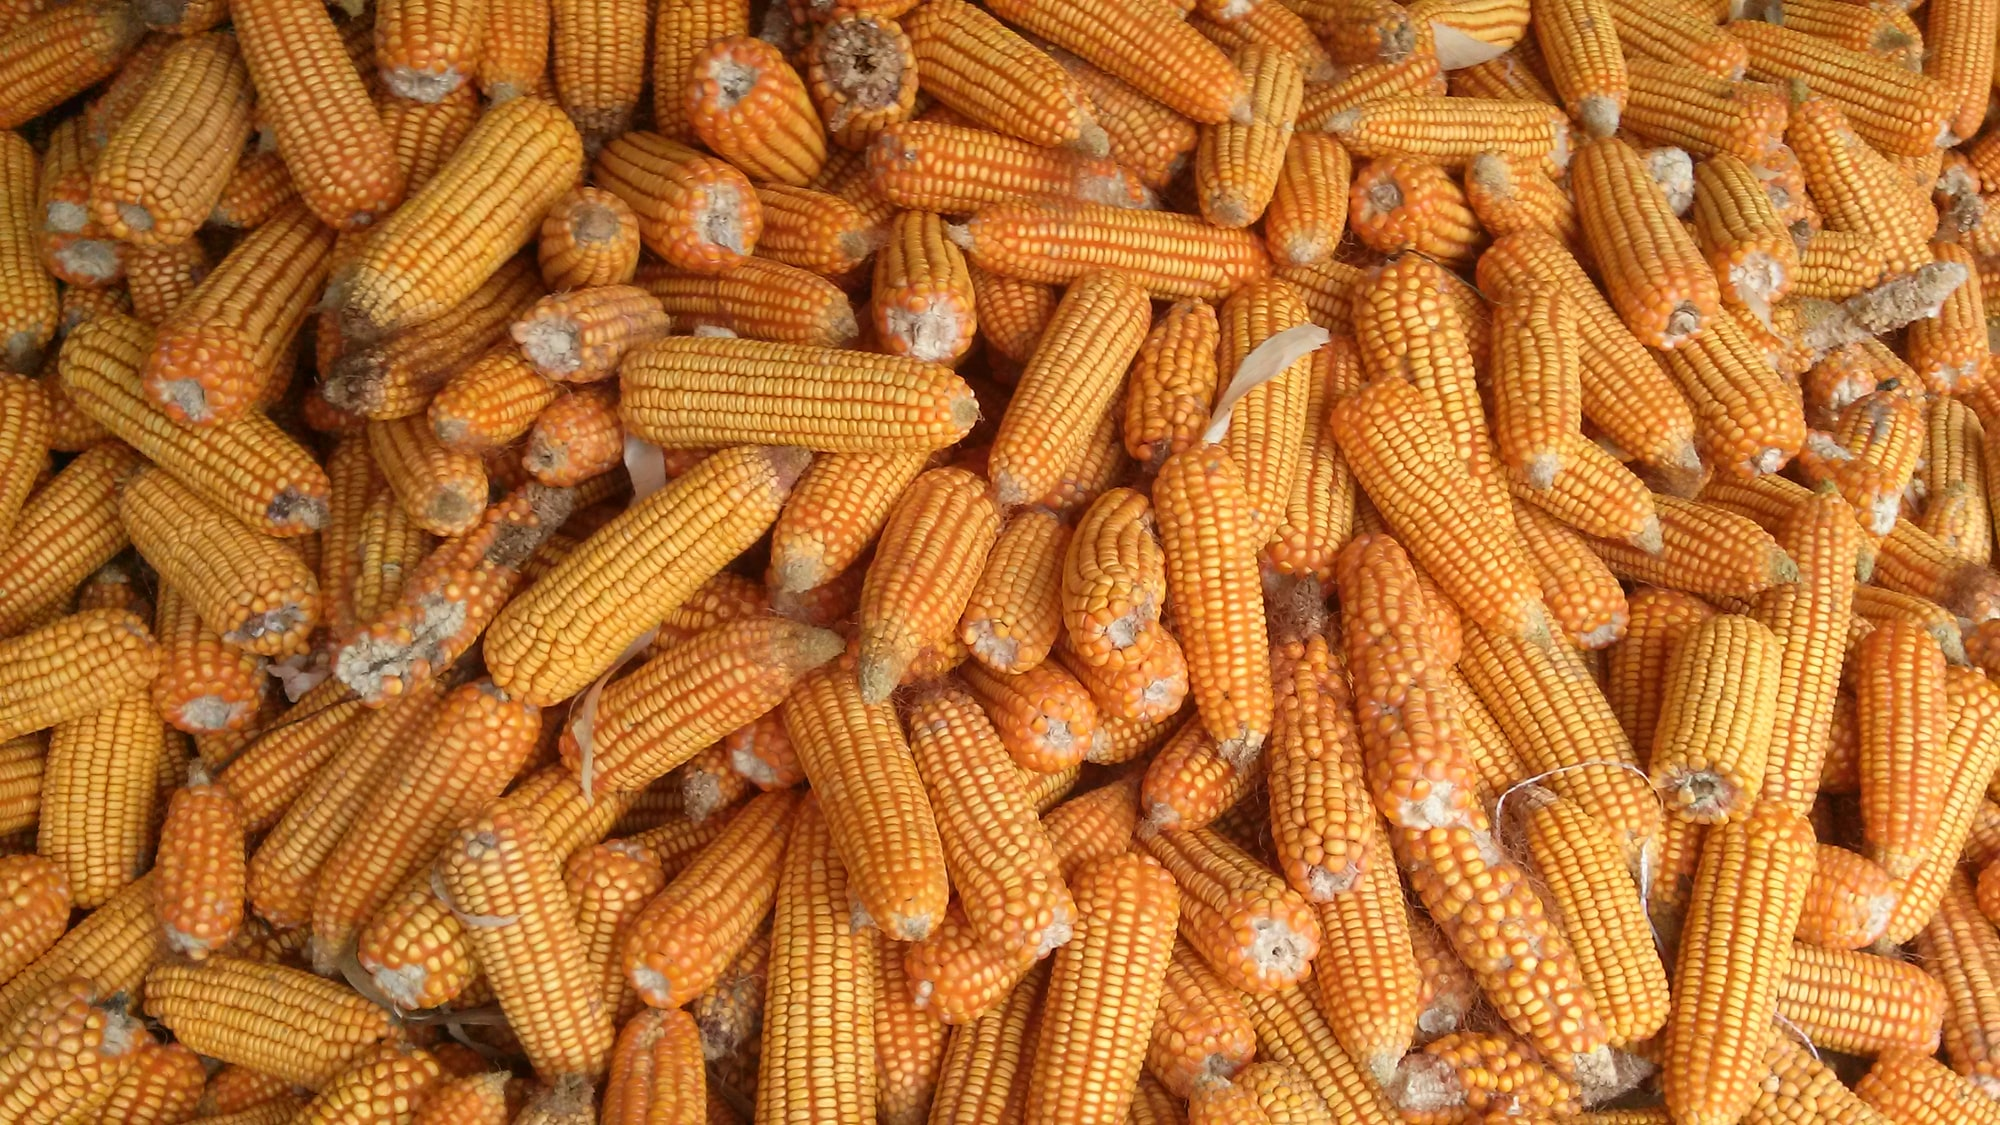 Israeli innovation aims to save costs for $53B U.S. corn industry